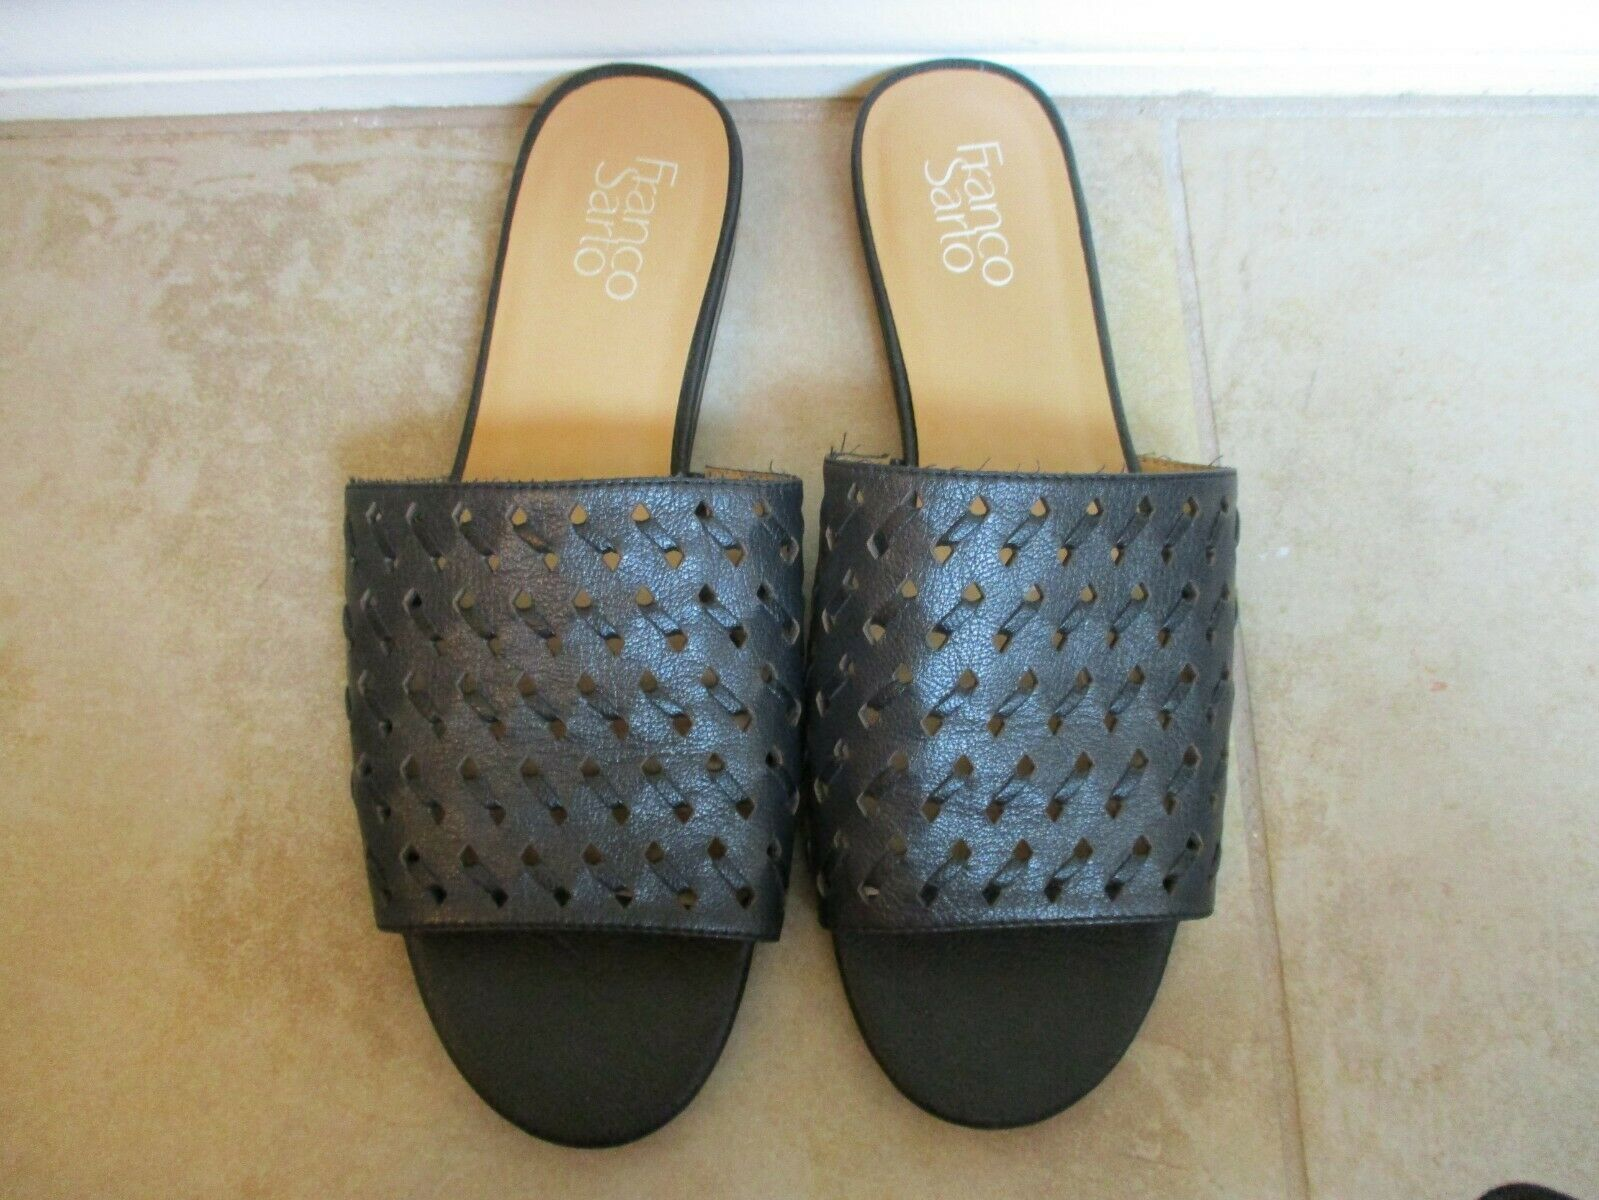 Franco Sarta Black Perforated Leather Mules For Women Size 9 Eur 39.5 image 3